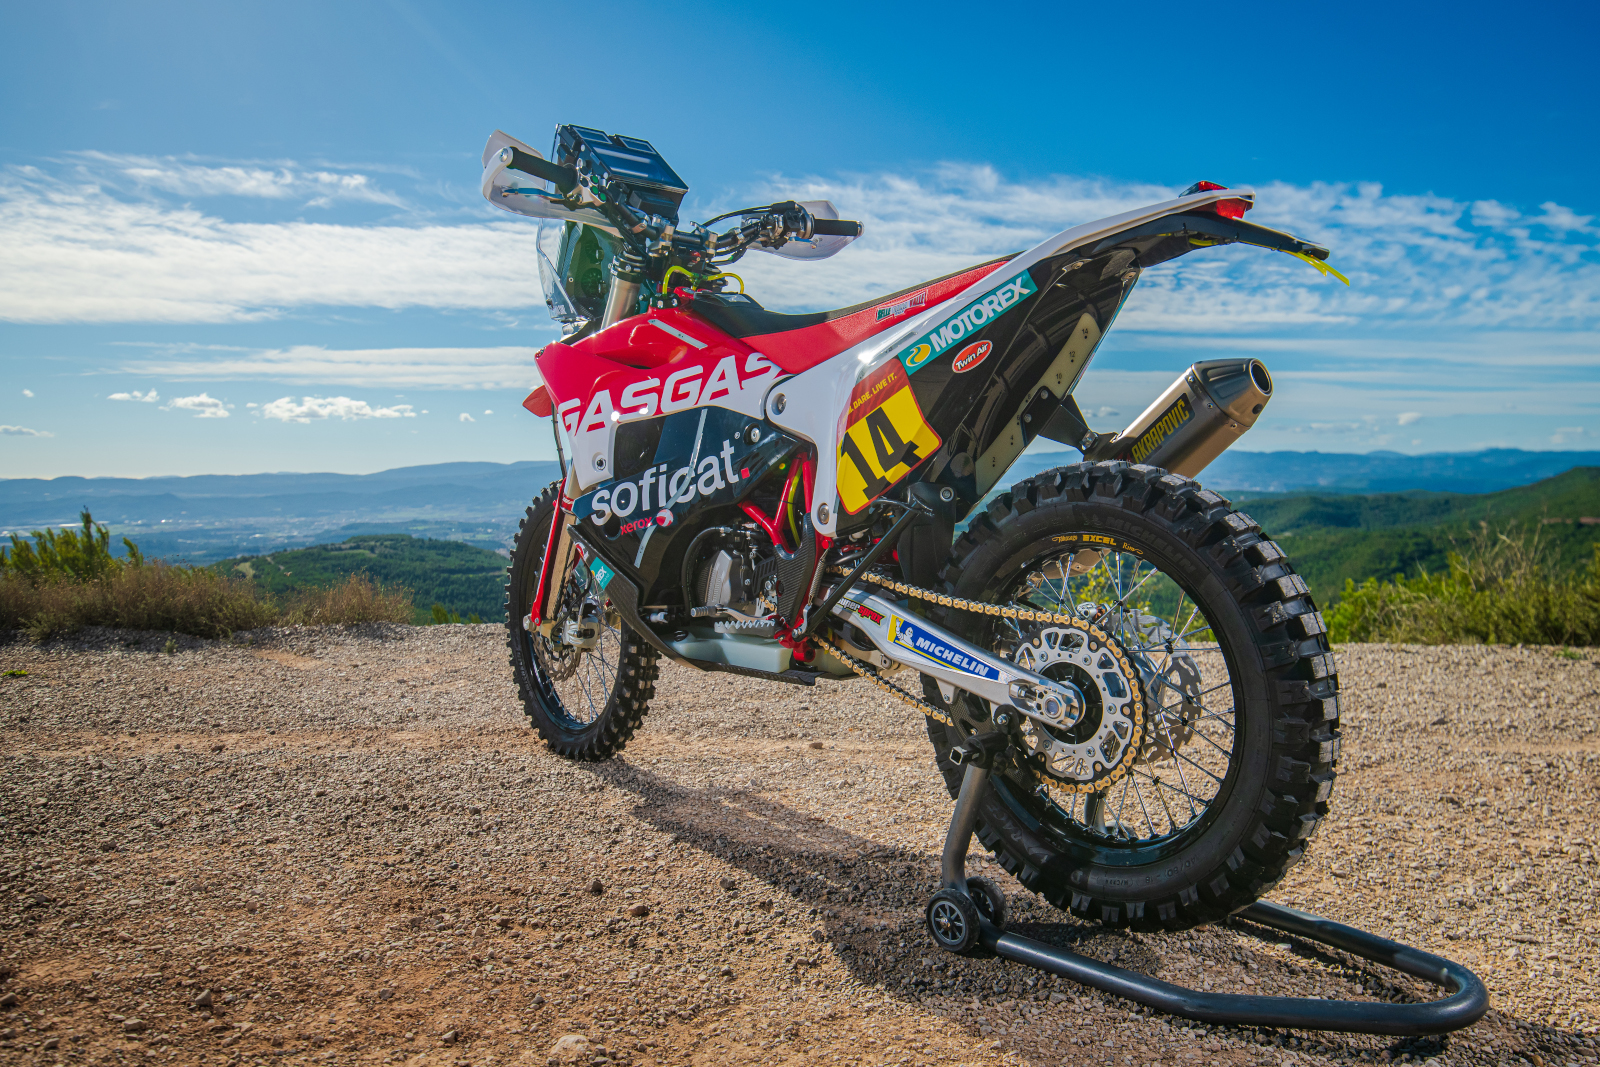 GasGas Motorcycles team up with Motorex